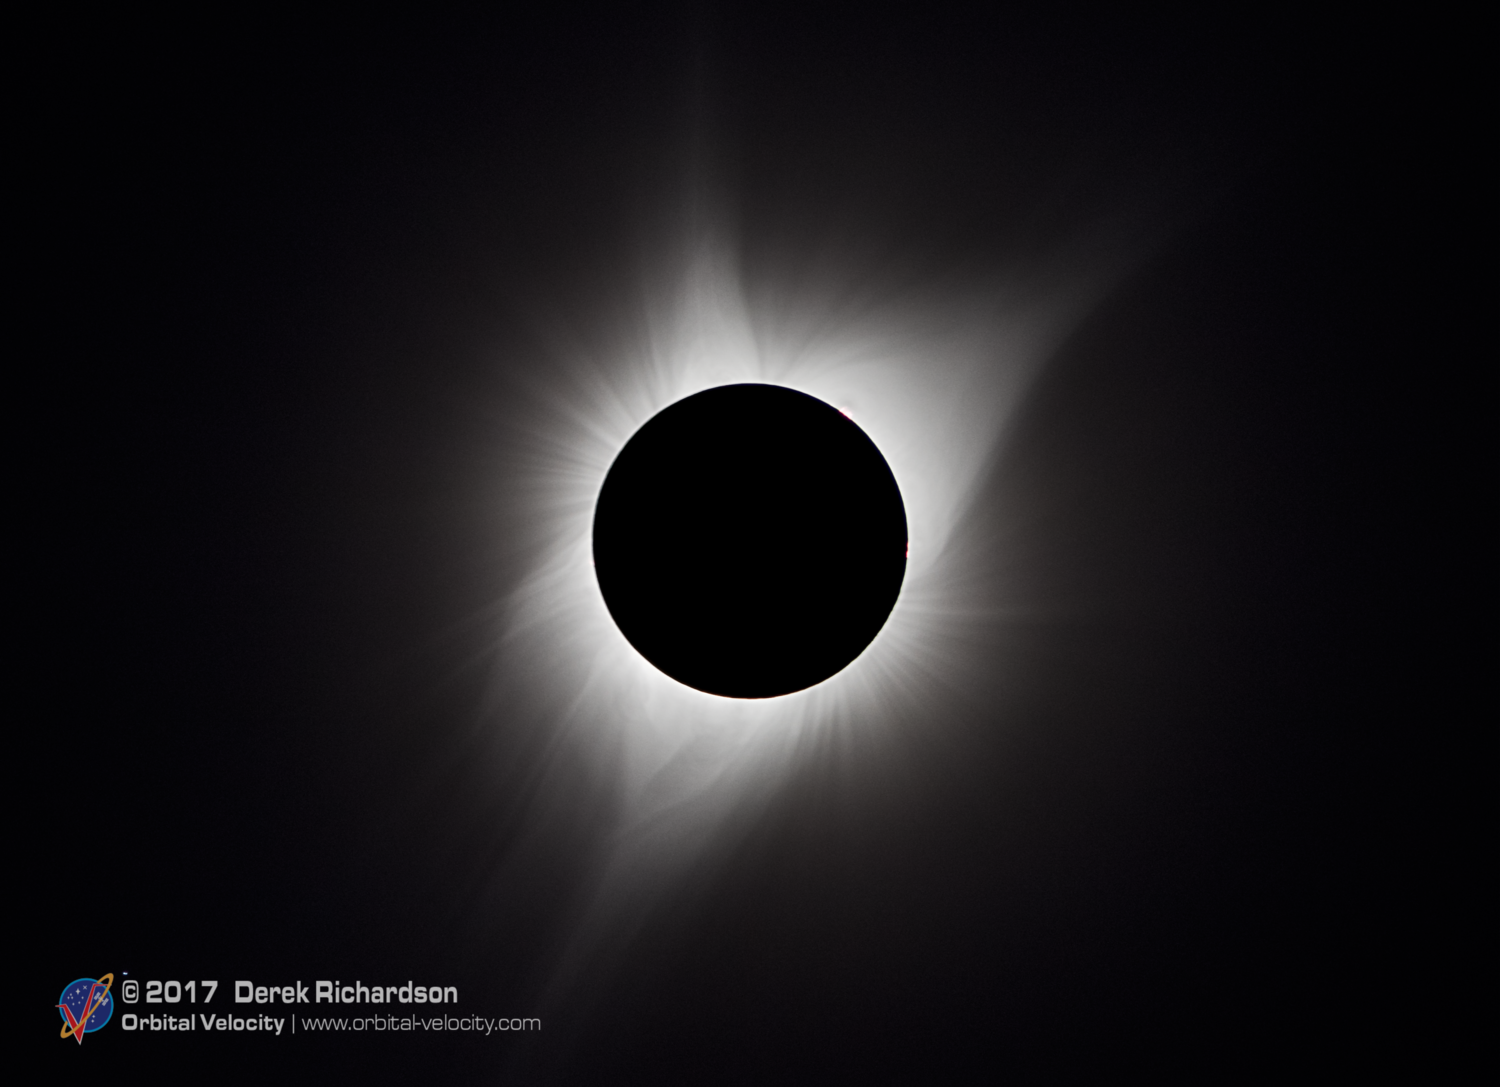 A composite of several exposures of totality. While human eyes can see a wide range of details, it is difficult for one image to capture the full scope of the eclipse. In reality, it often requires multiple exposures stacked on top of each other. Photo Credit: Orbital Velocity/Derek Richardson